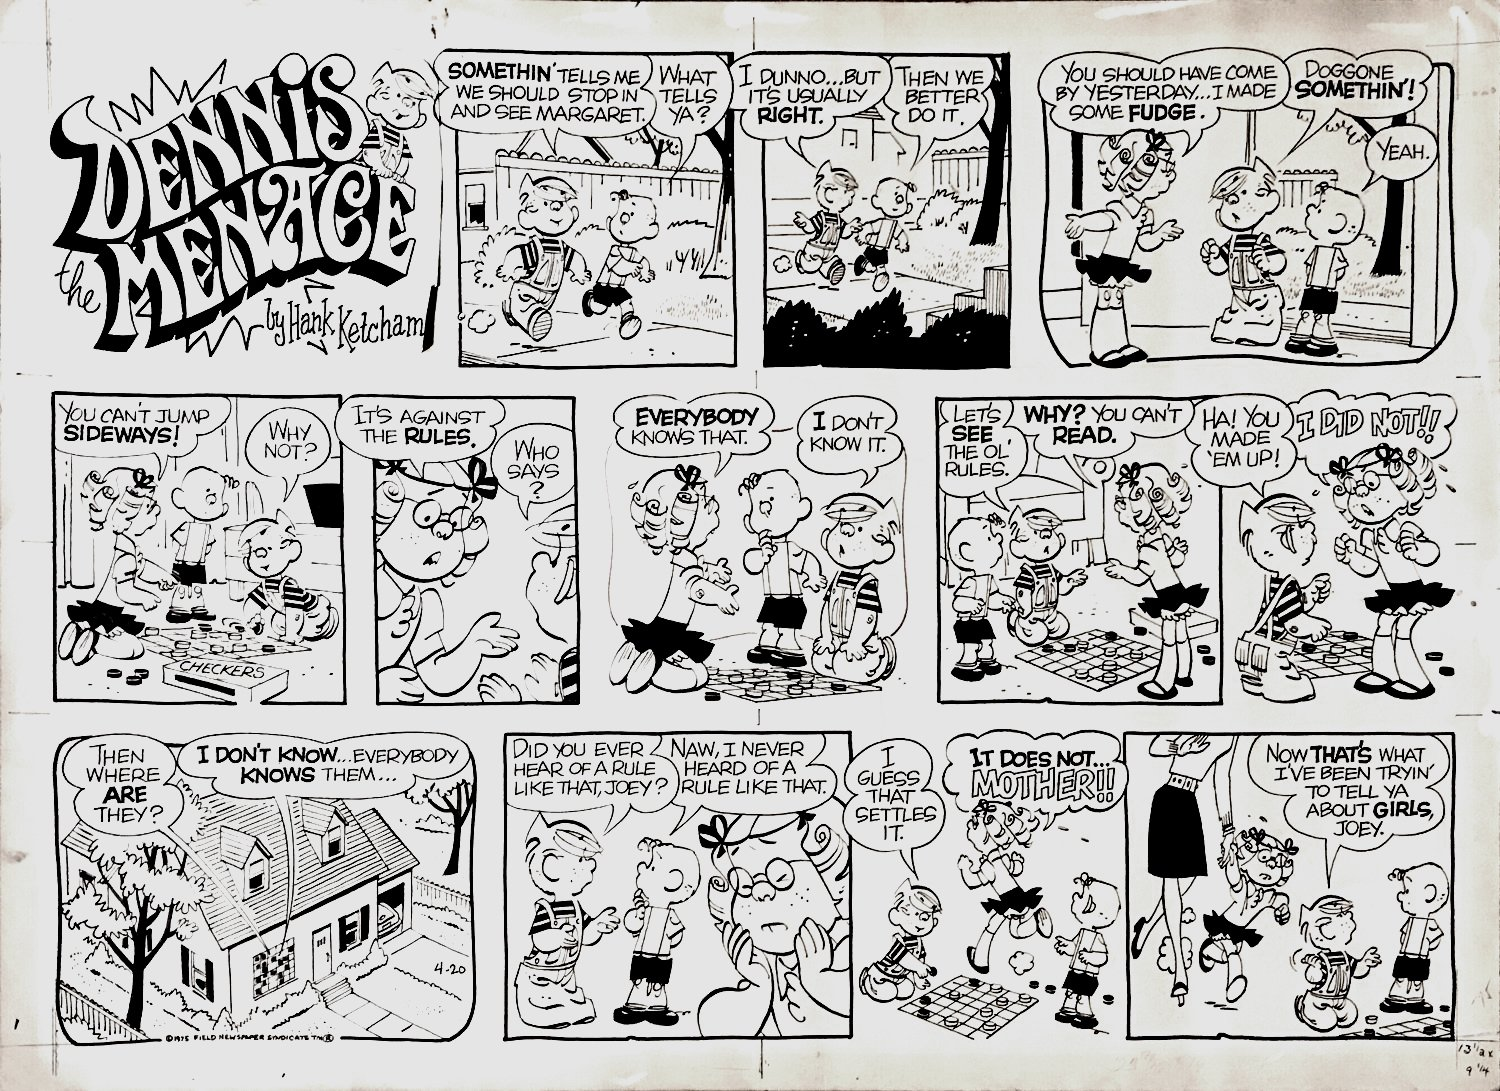 Dennis the Menace Sunday Comic Strip 4-20-1975